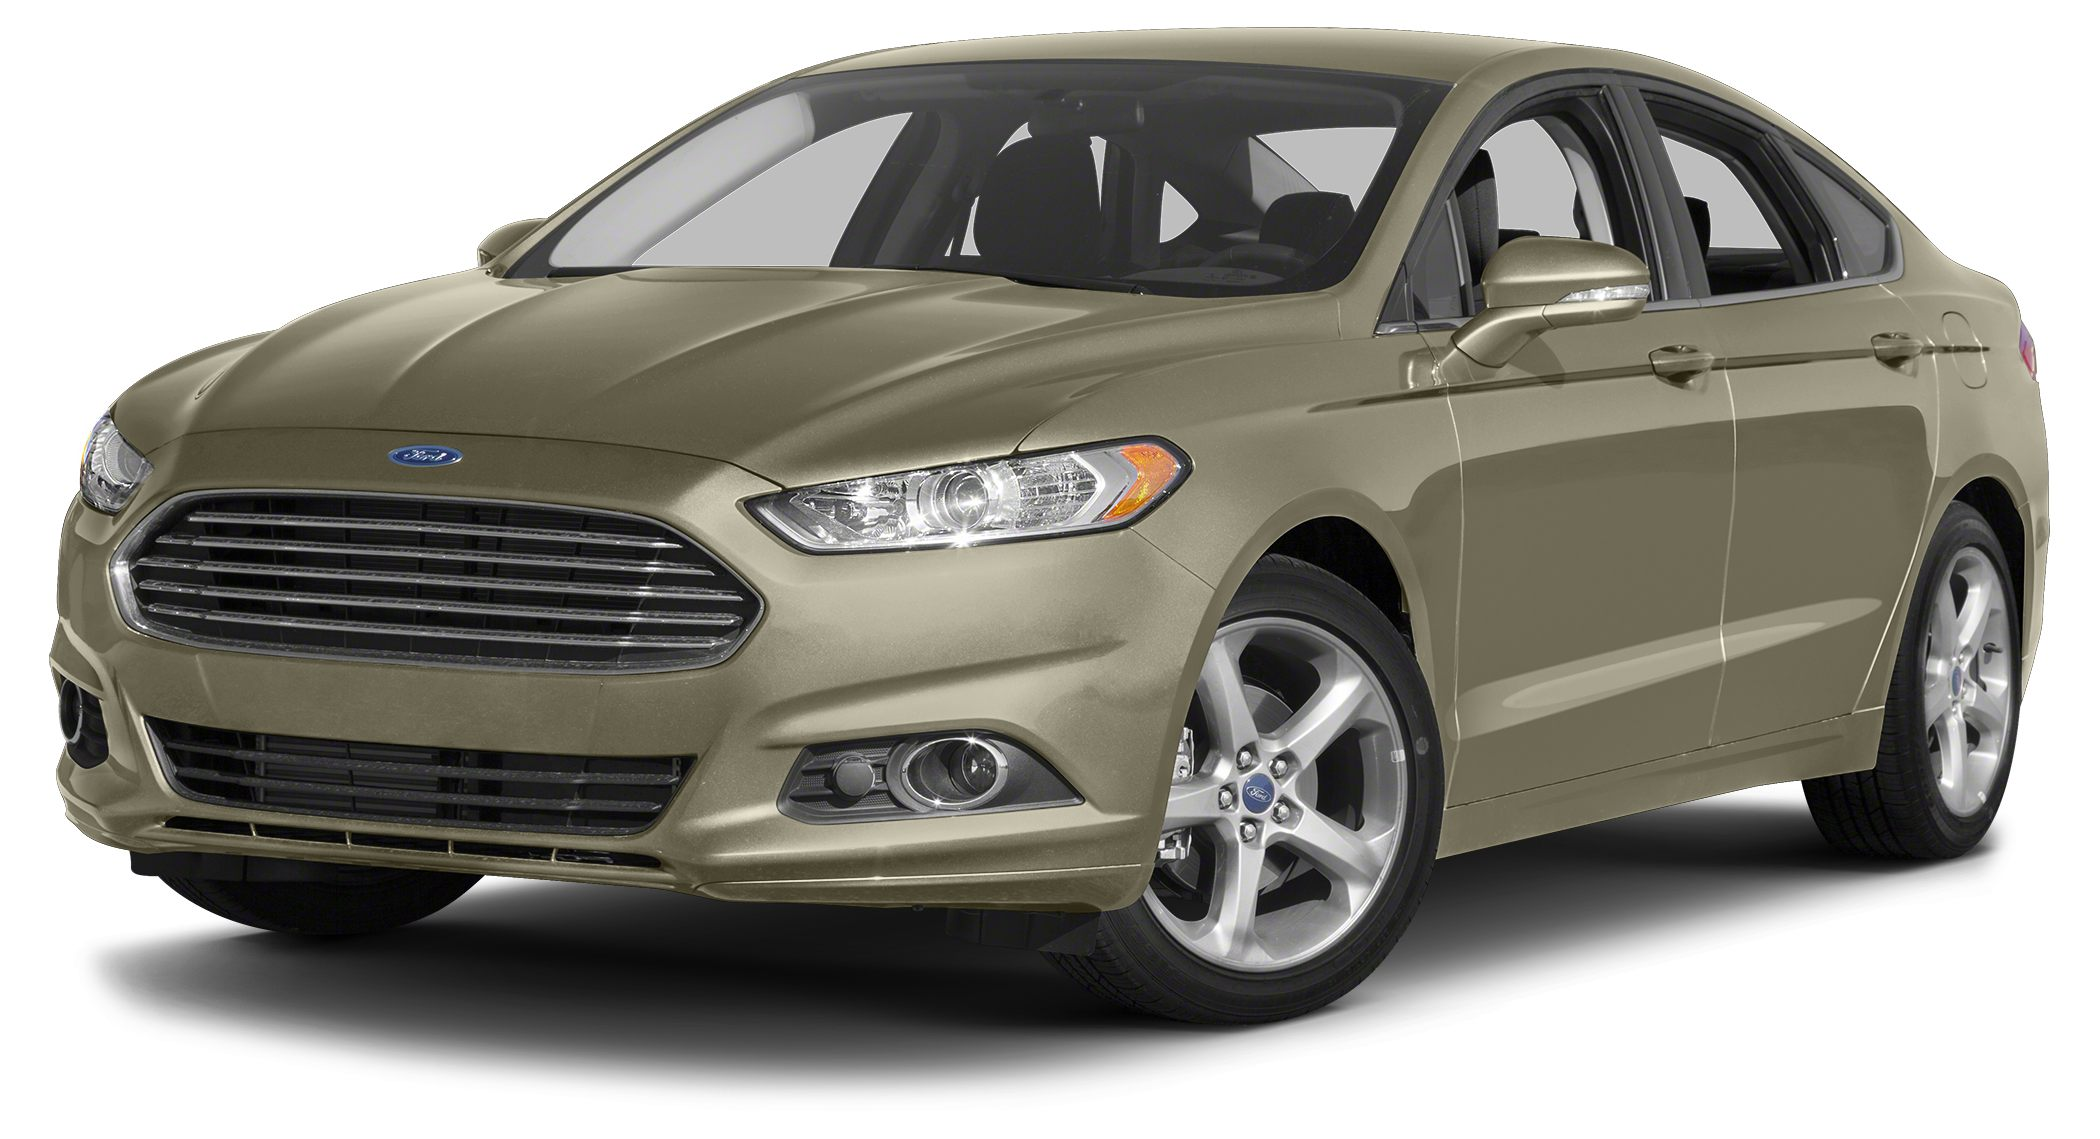 2013 Ford Fusion SE EPA 34 MPG Hwy22 MPG City SE trim iPodMP3 Input CD Player Onboard Communi